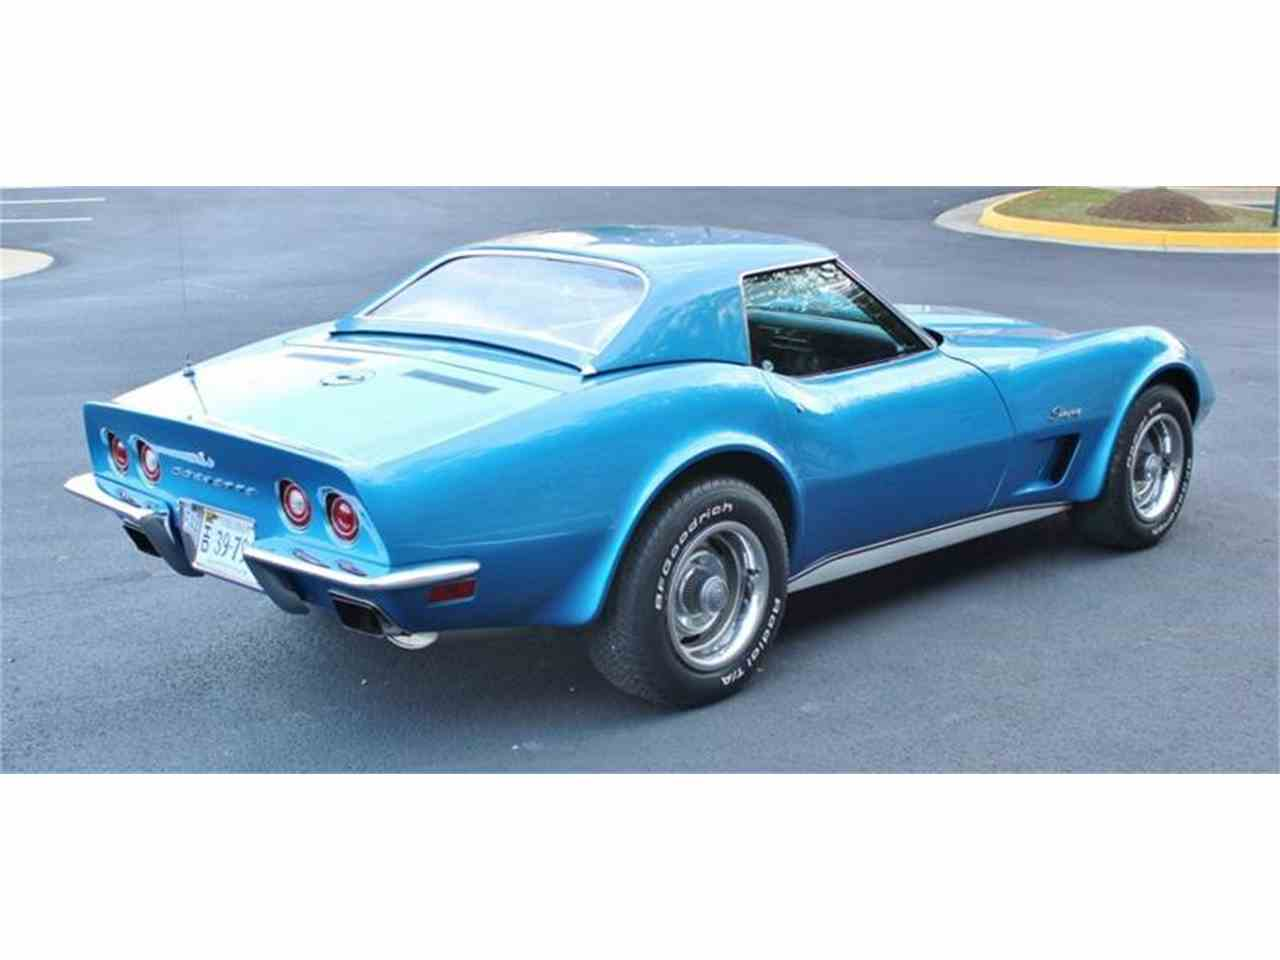 Picture of 1973 chevrolet corvette coupe exterior - Photo 5